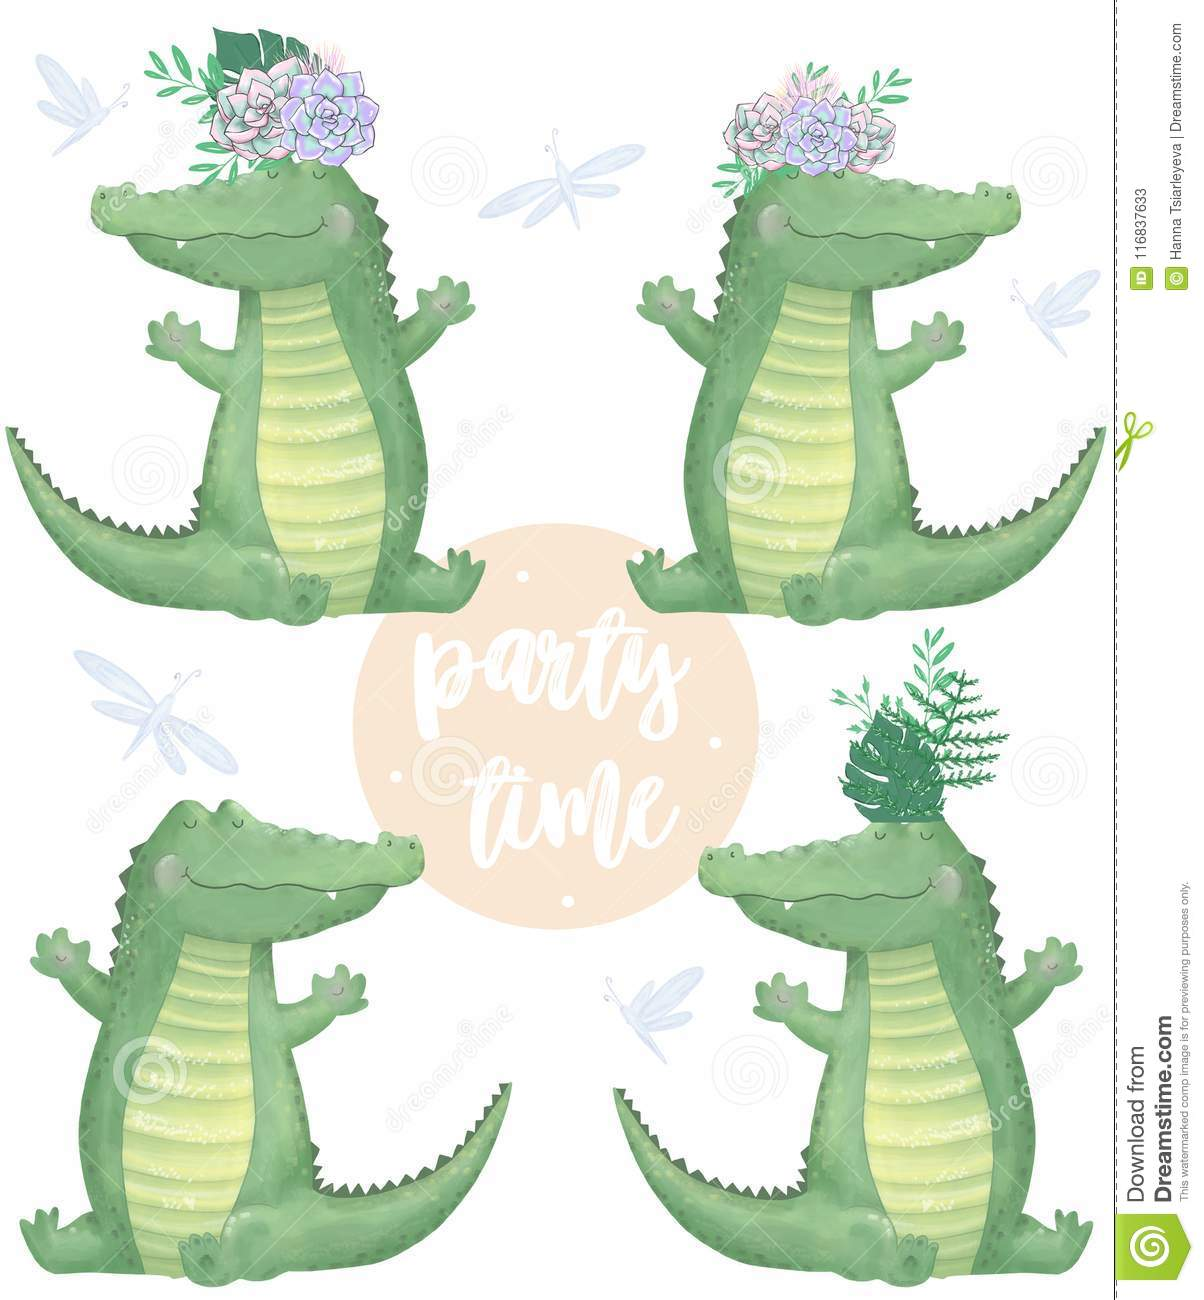 Crocodile Digital Clip Art Cute Animal And Flowers Party Time Text Greeting Celebration Birthday